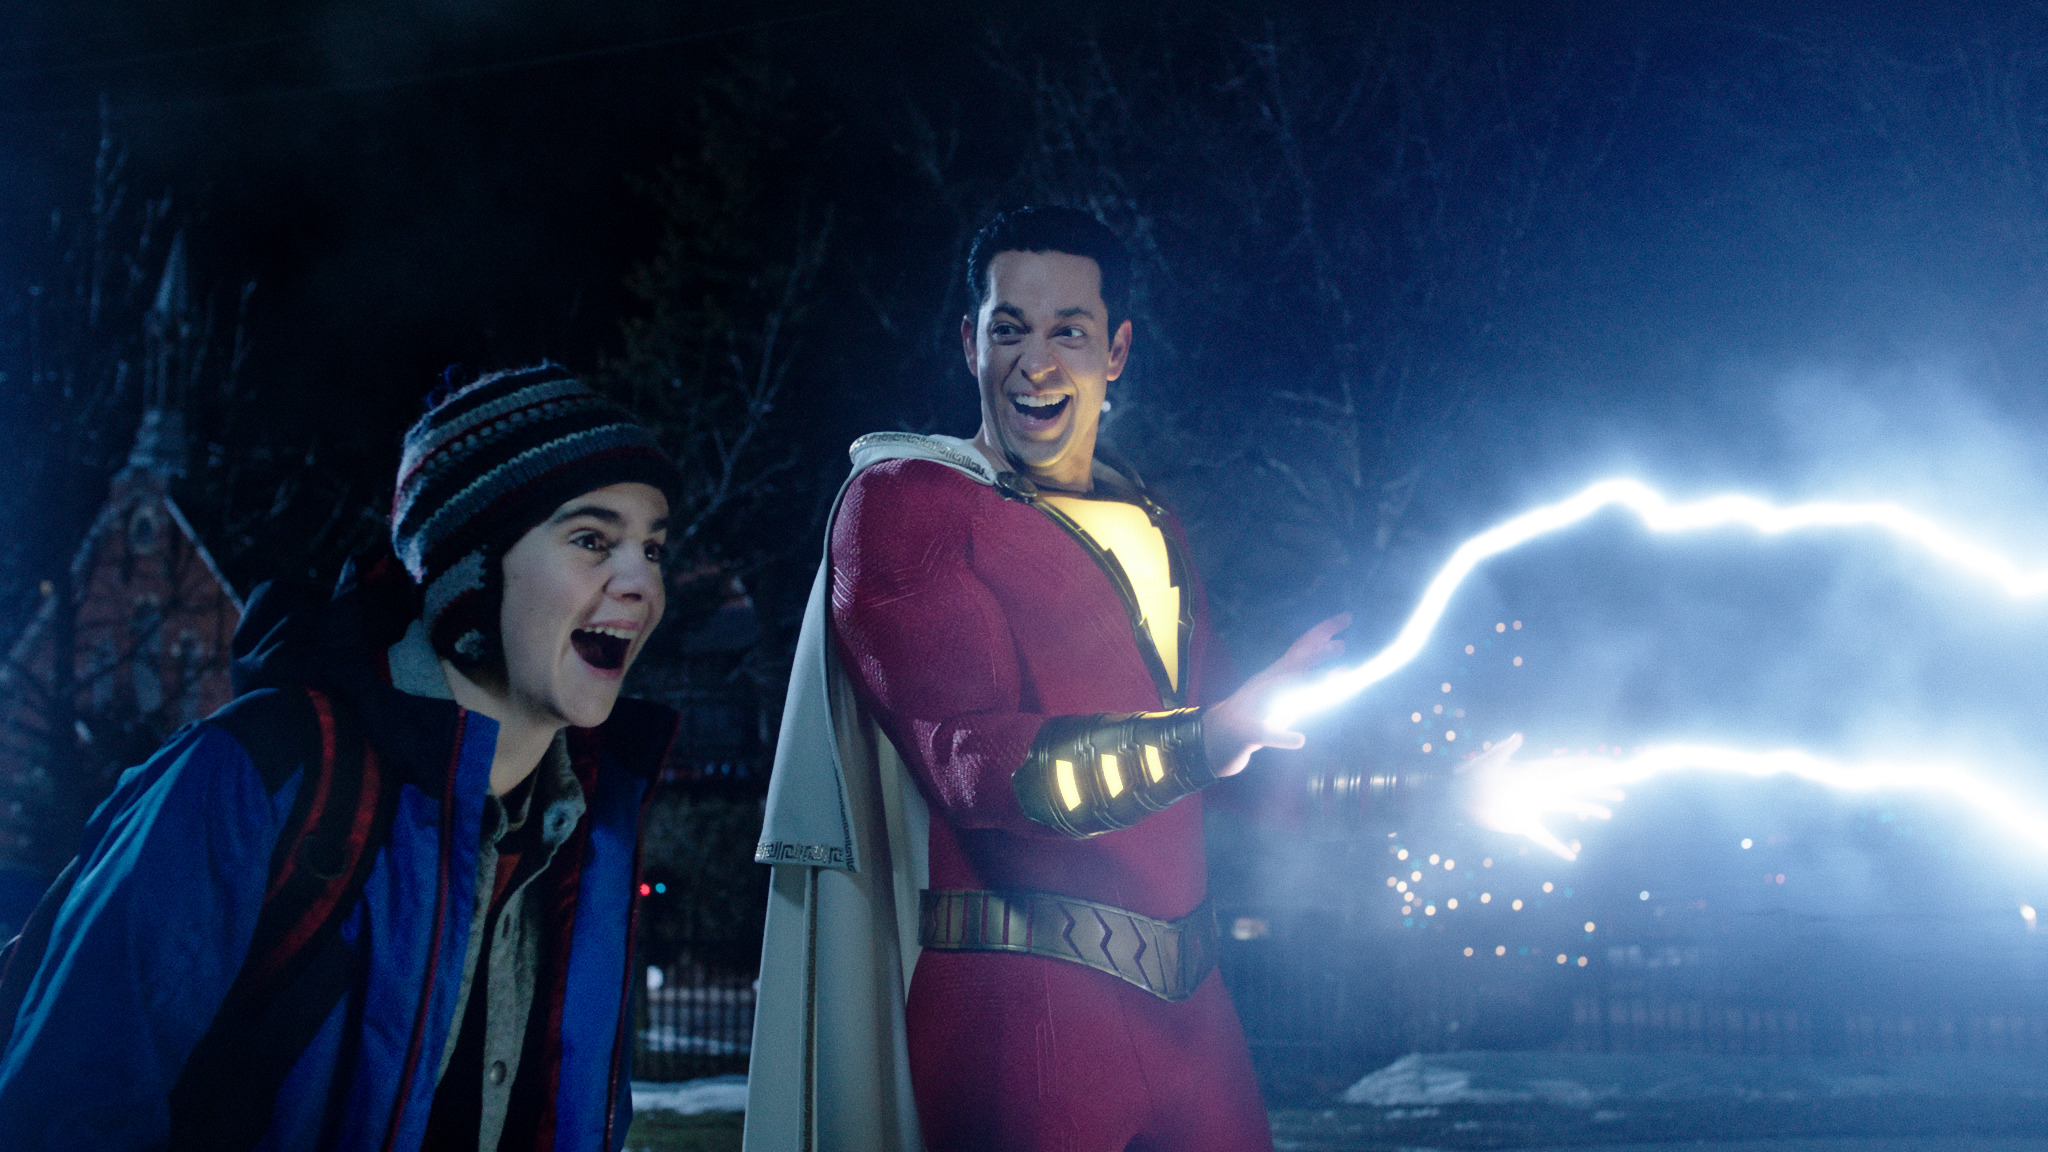 90f6cad7 Shazam! finally lets DC superheroes be joyous fun - The Verge